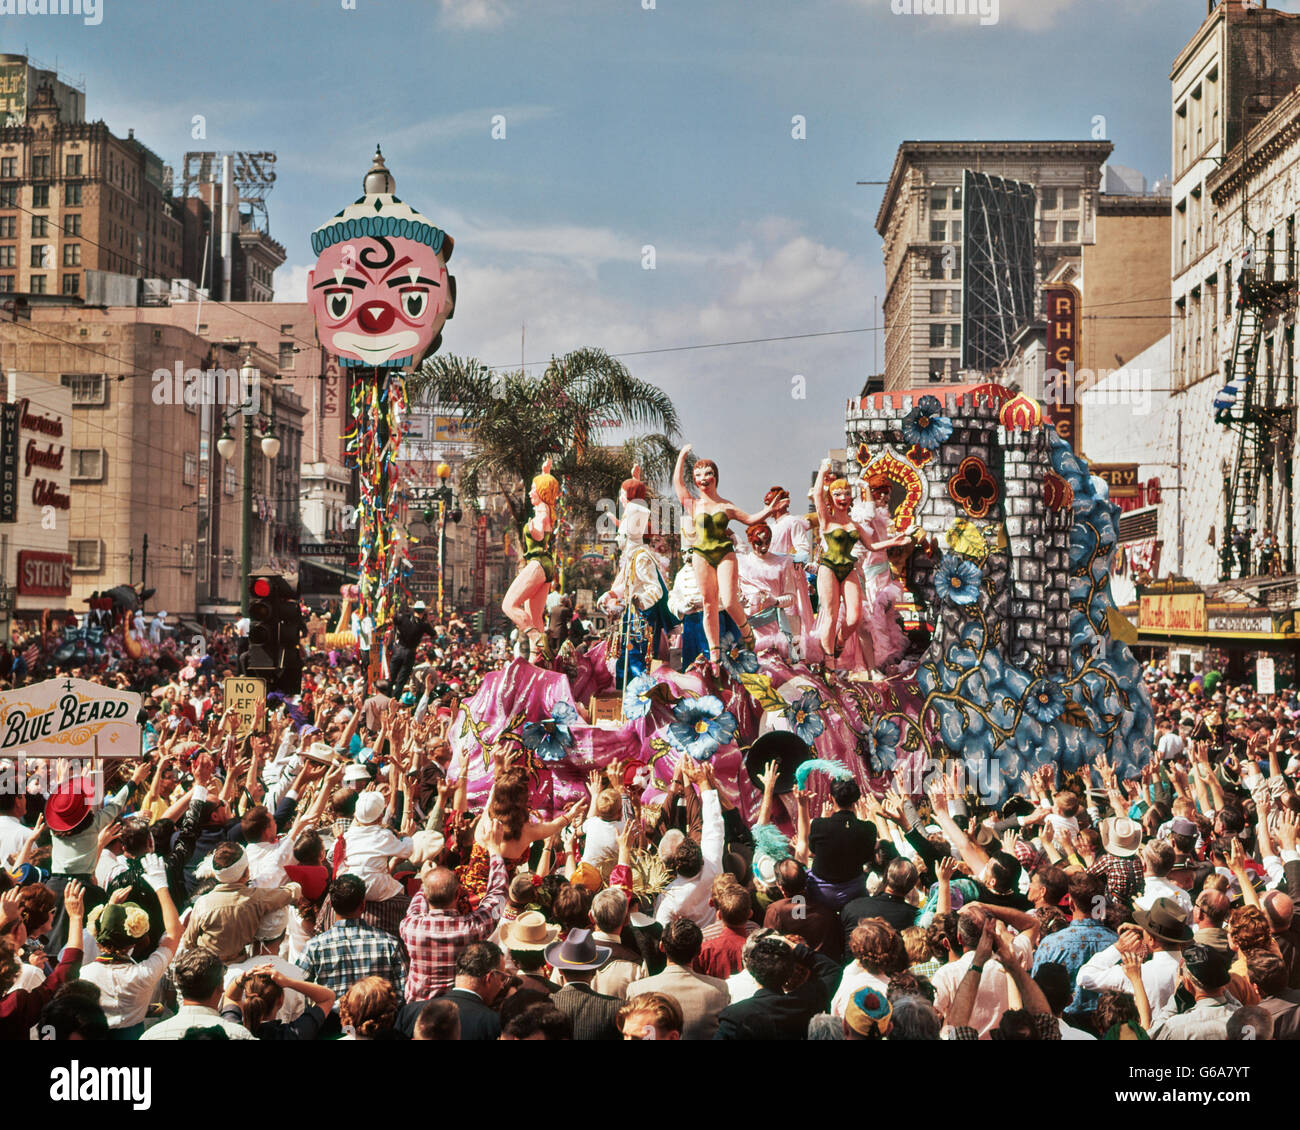 1960s MARDI GRAS REX PARADE ON CANAL STREET FEBRUARY 14 1961 CROWD REACHING FOR TRINKETS NEW ORLEANS LA USA - Stock Image